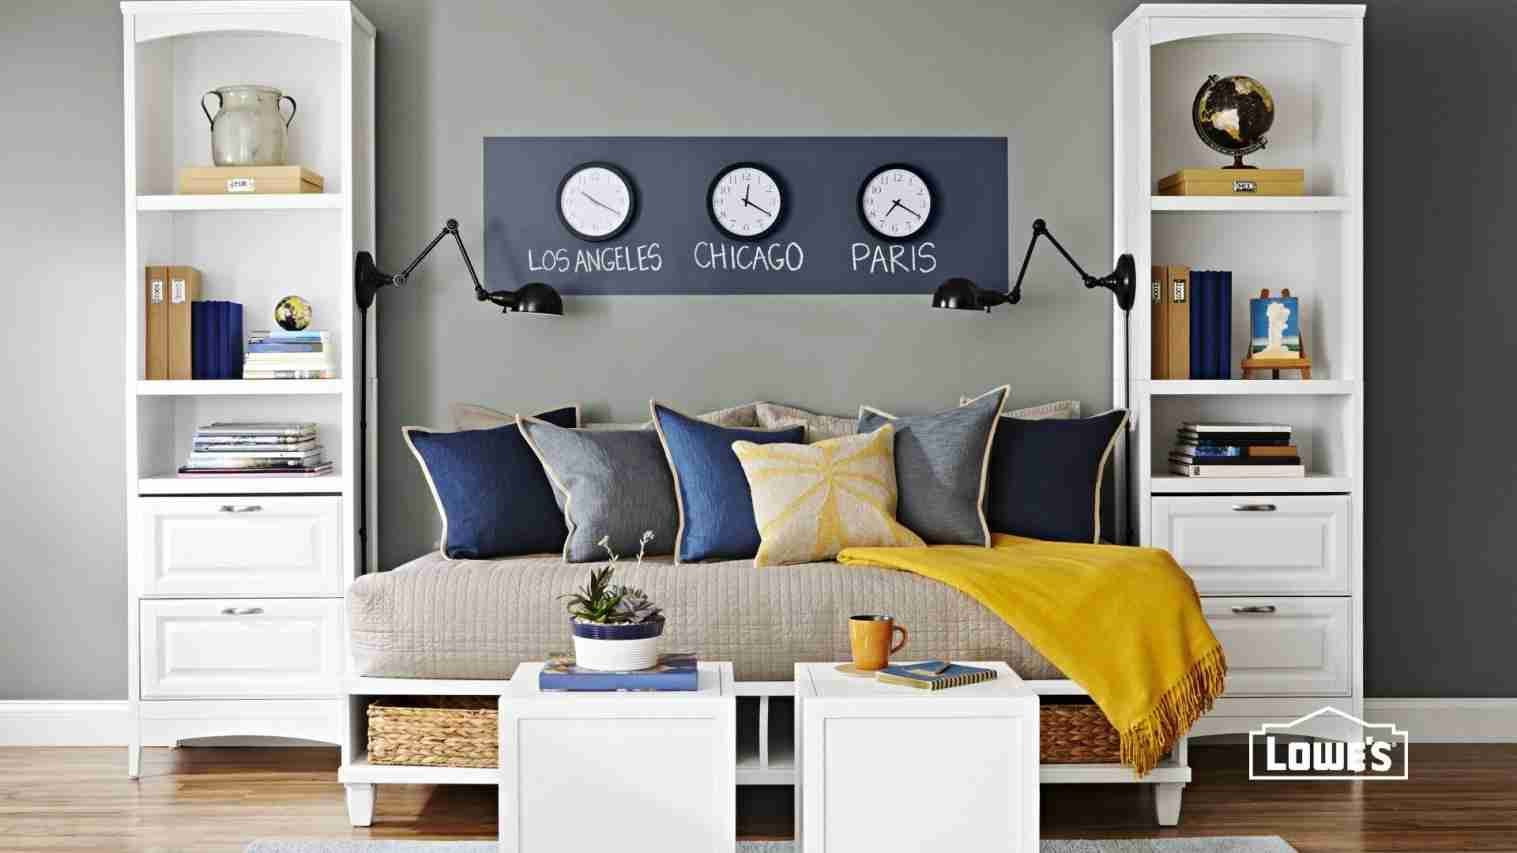 10 Guest Bedroom Storage Ideas Stylish And Stunning Small Guest Bedroom Guest Bedroom Office Guest Bedrooms Small home office spare bedroom ideas